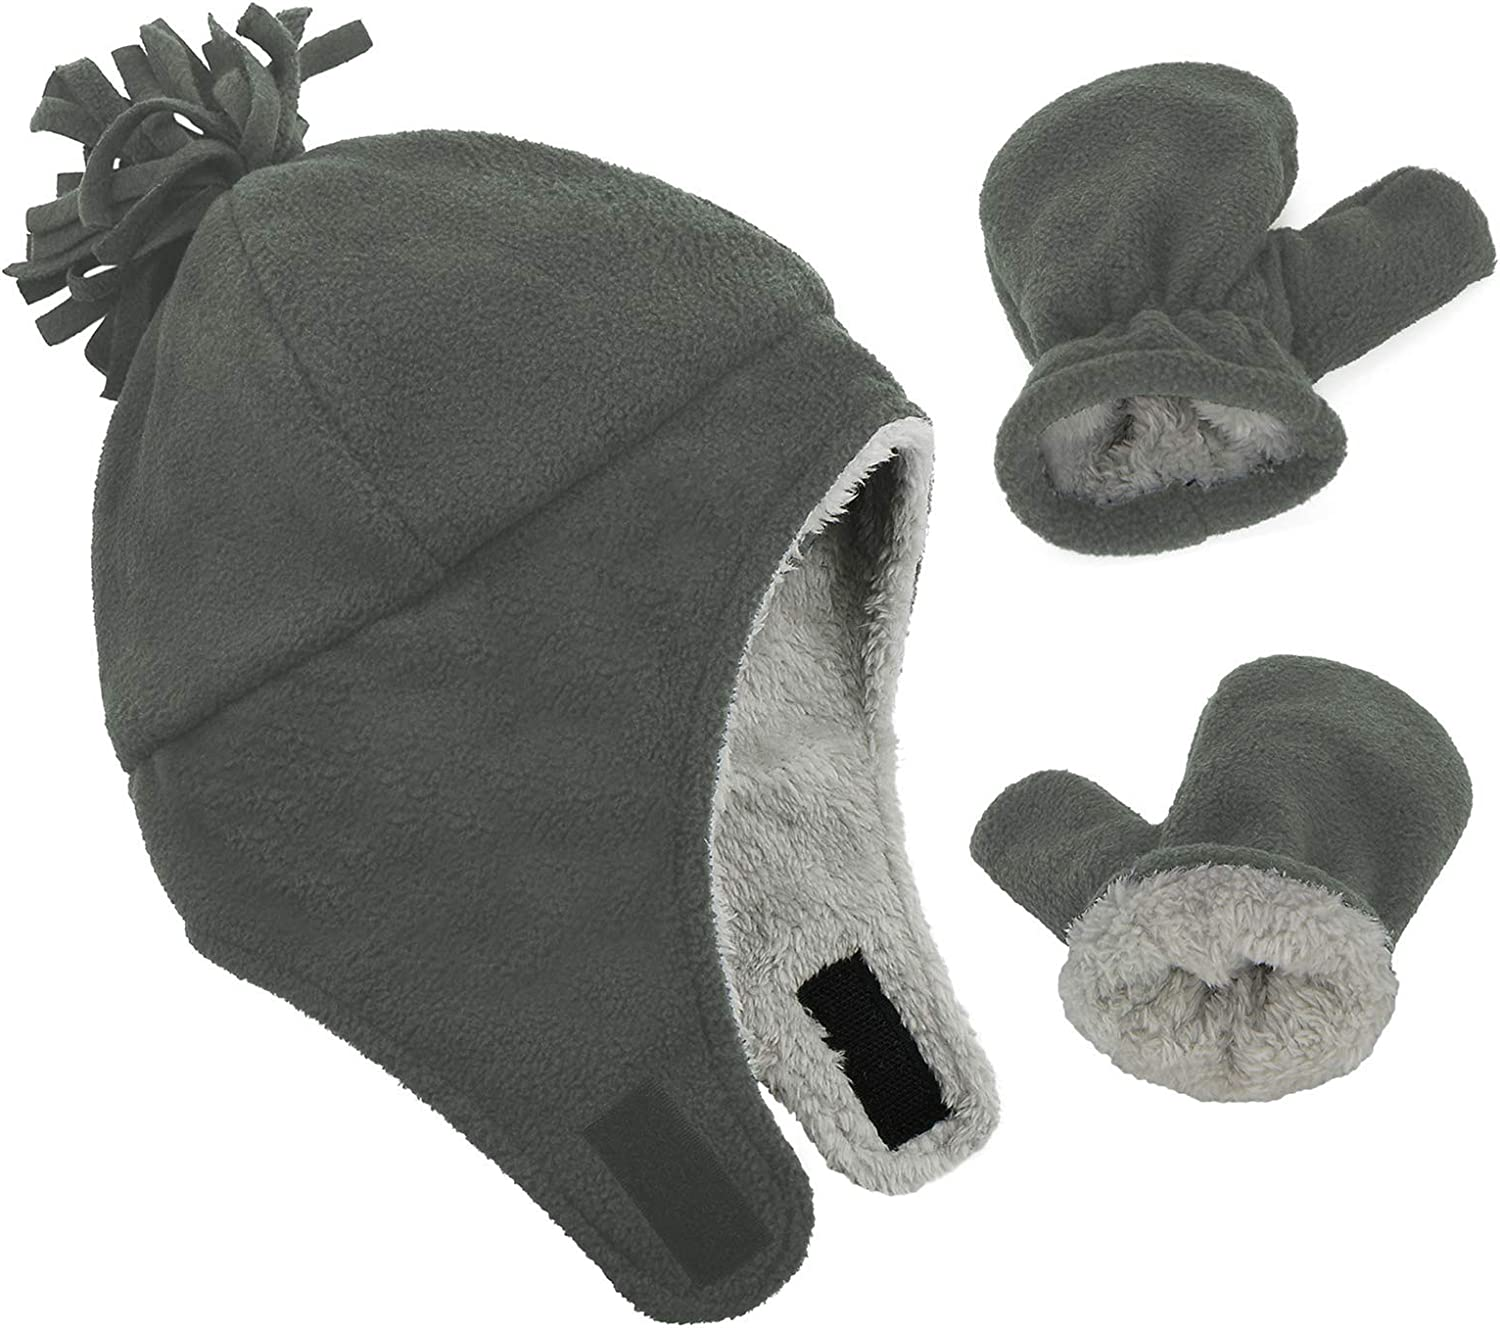 American Trends Baby Hats Baby Mittens Newborn Baby Beanie Gifts for 0-6 Months Fall Winter Cap